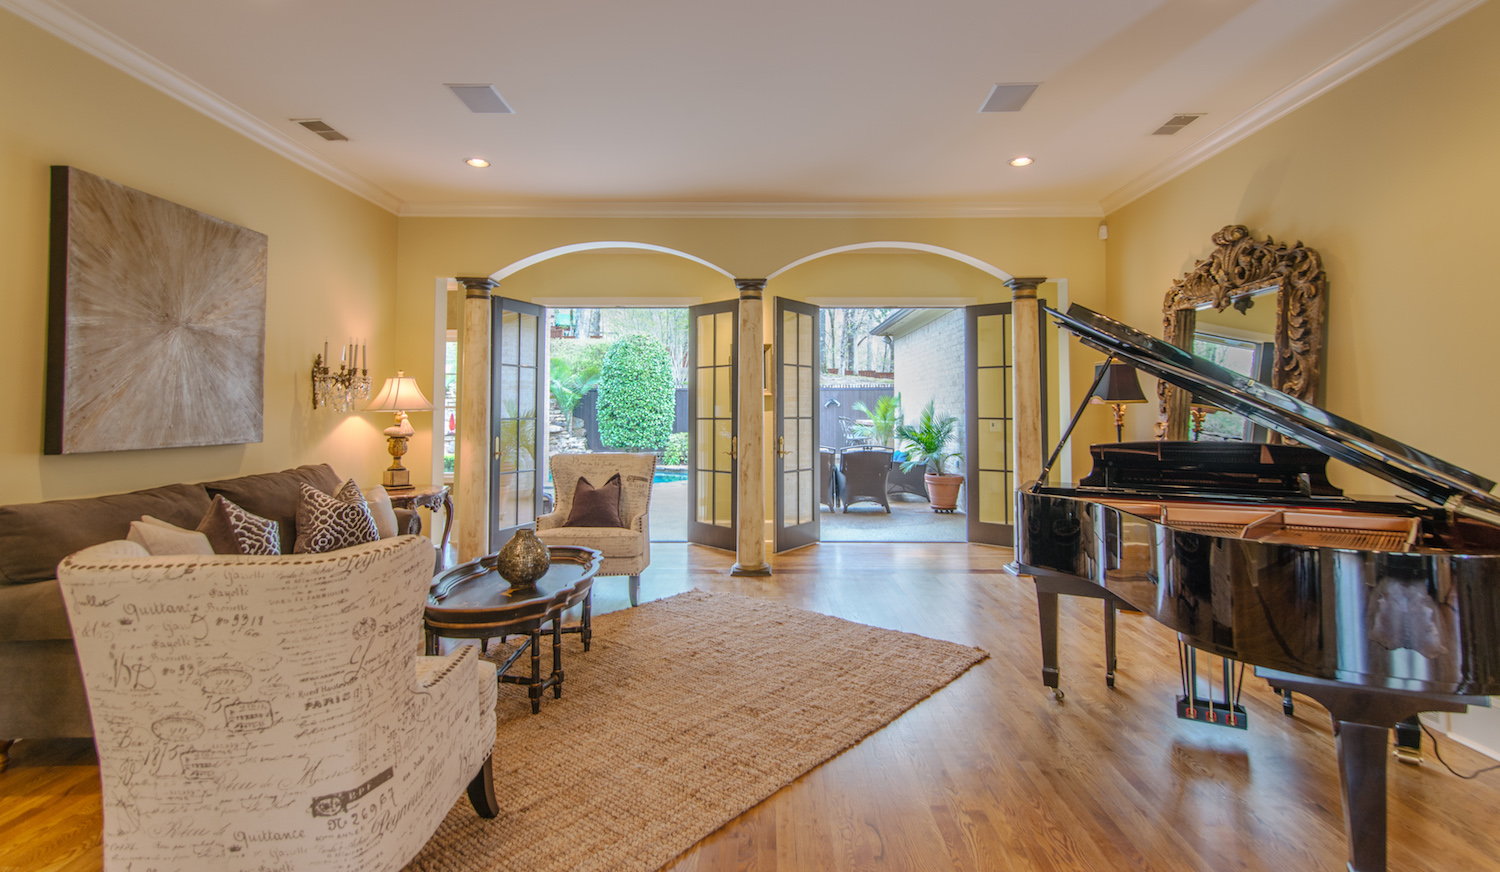 showhomes memphis best home staging in memphis tn 38112